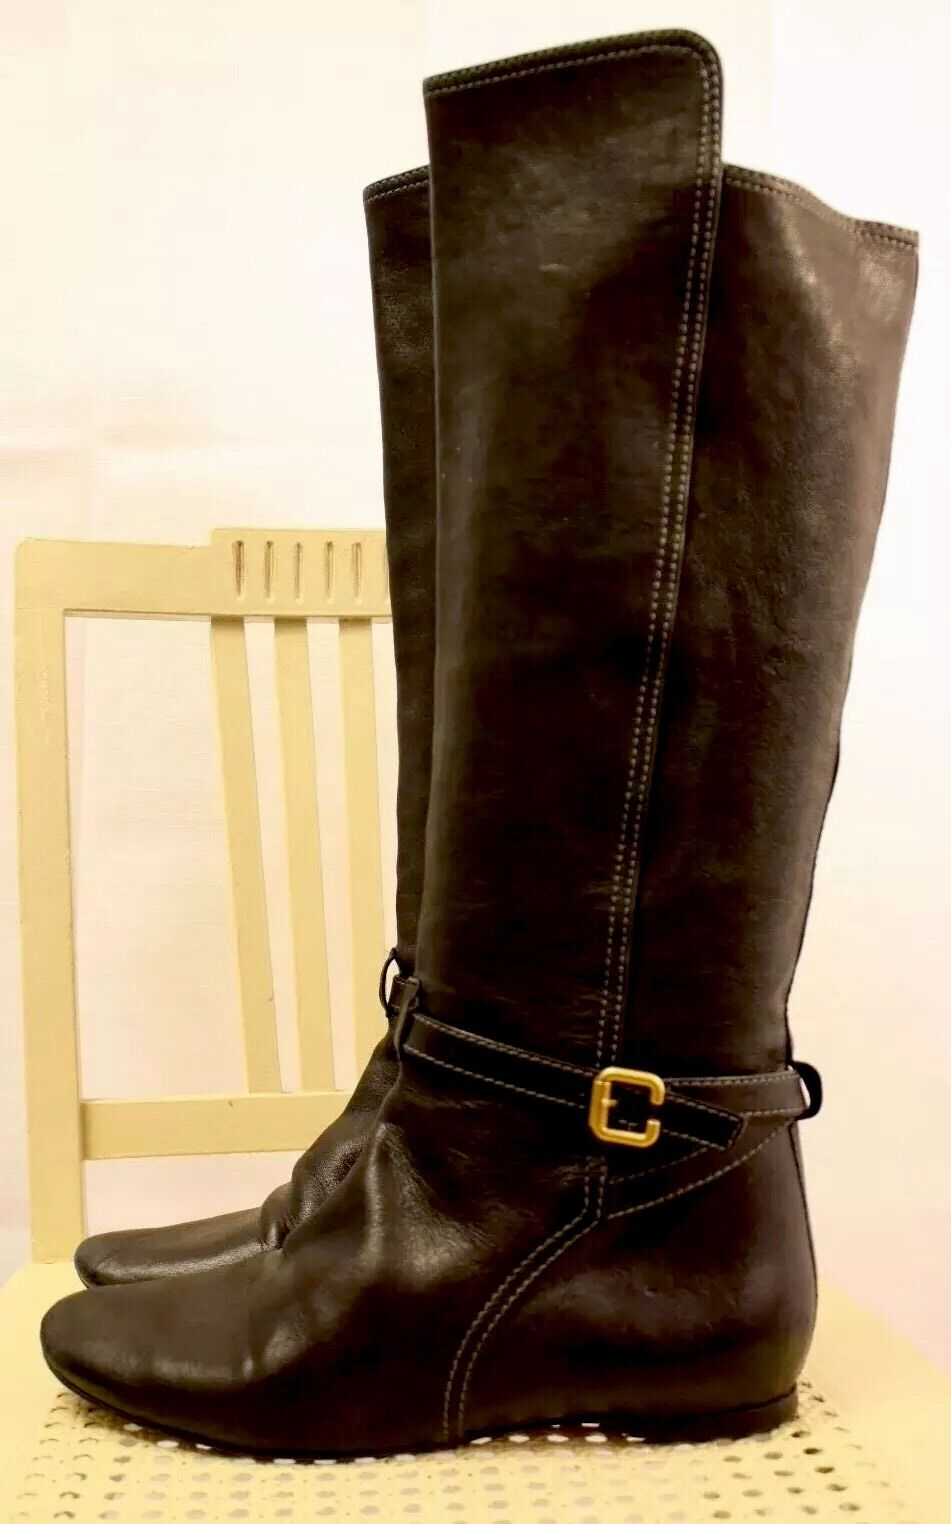 CHLOE Black Glove Soft Leather Knee Pull-On Riding Boots 10M 40EU ITALY NICE